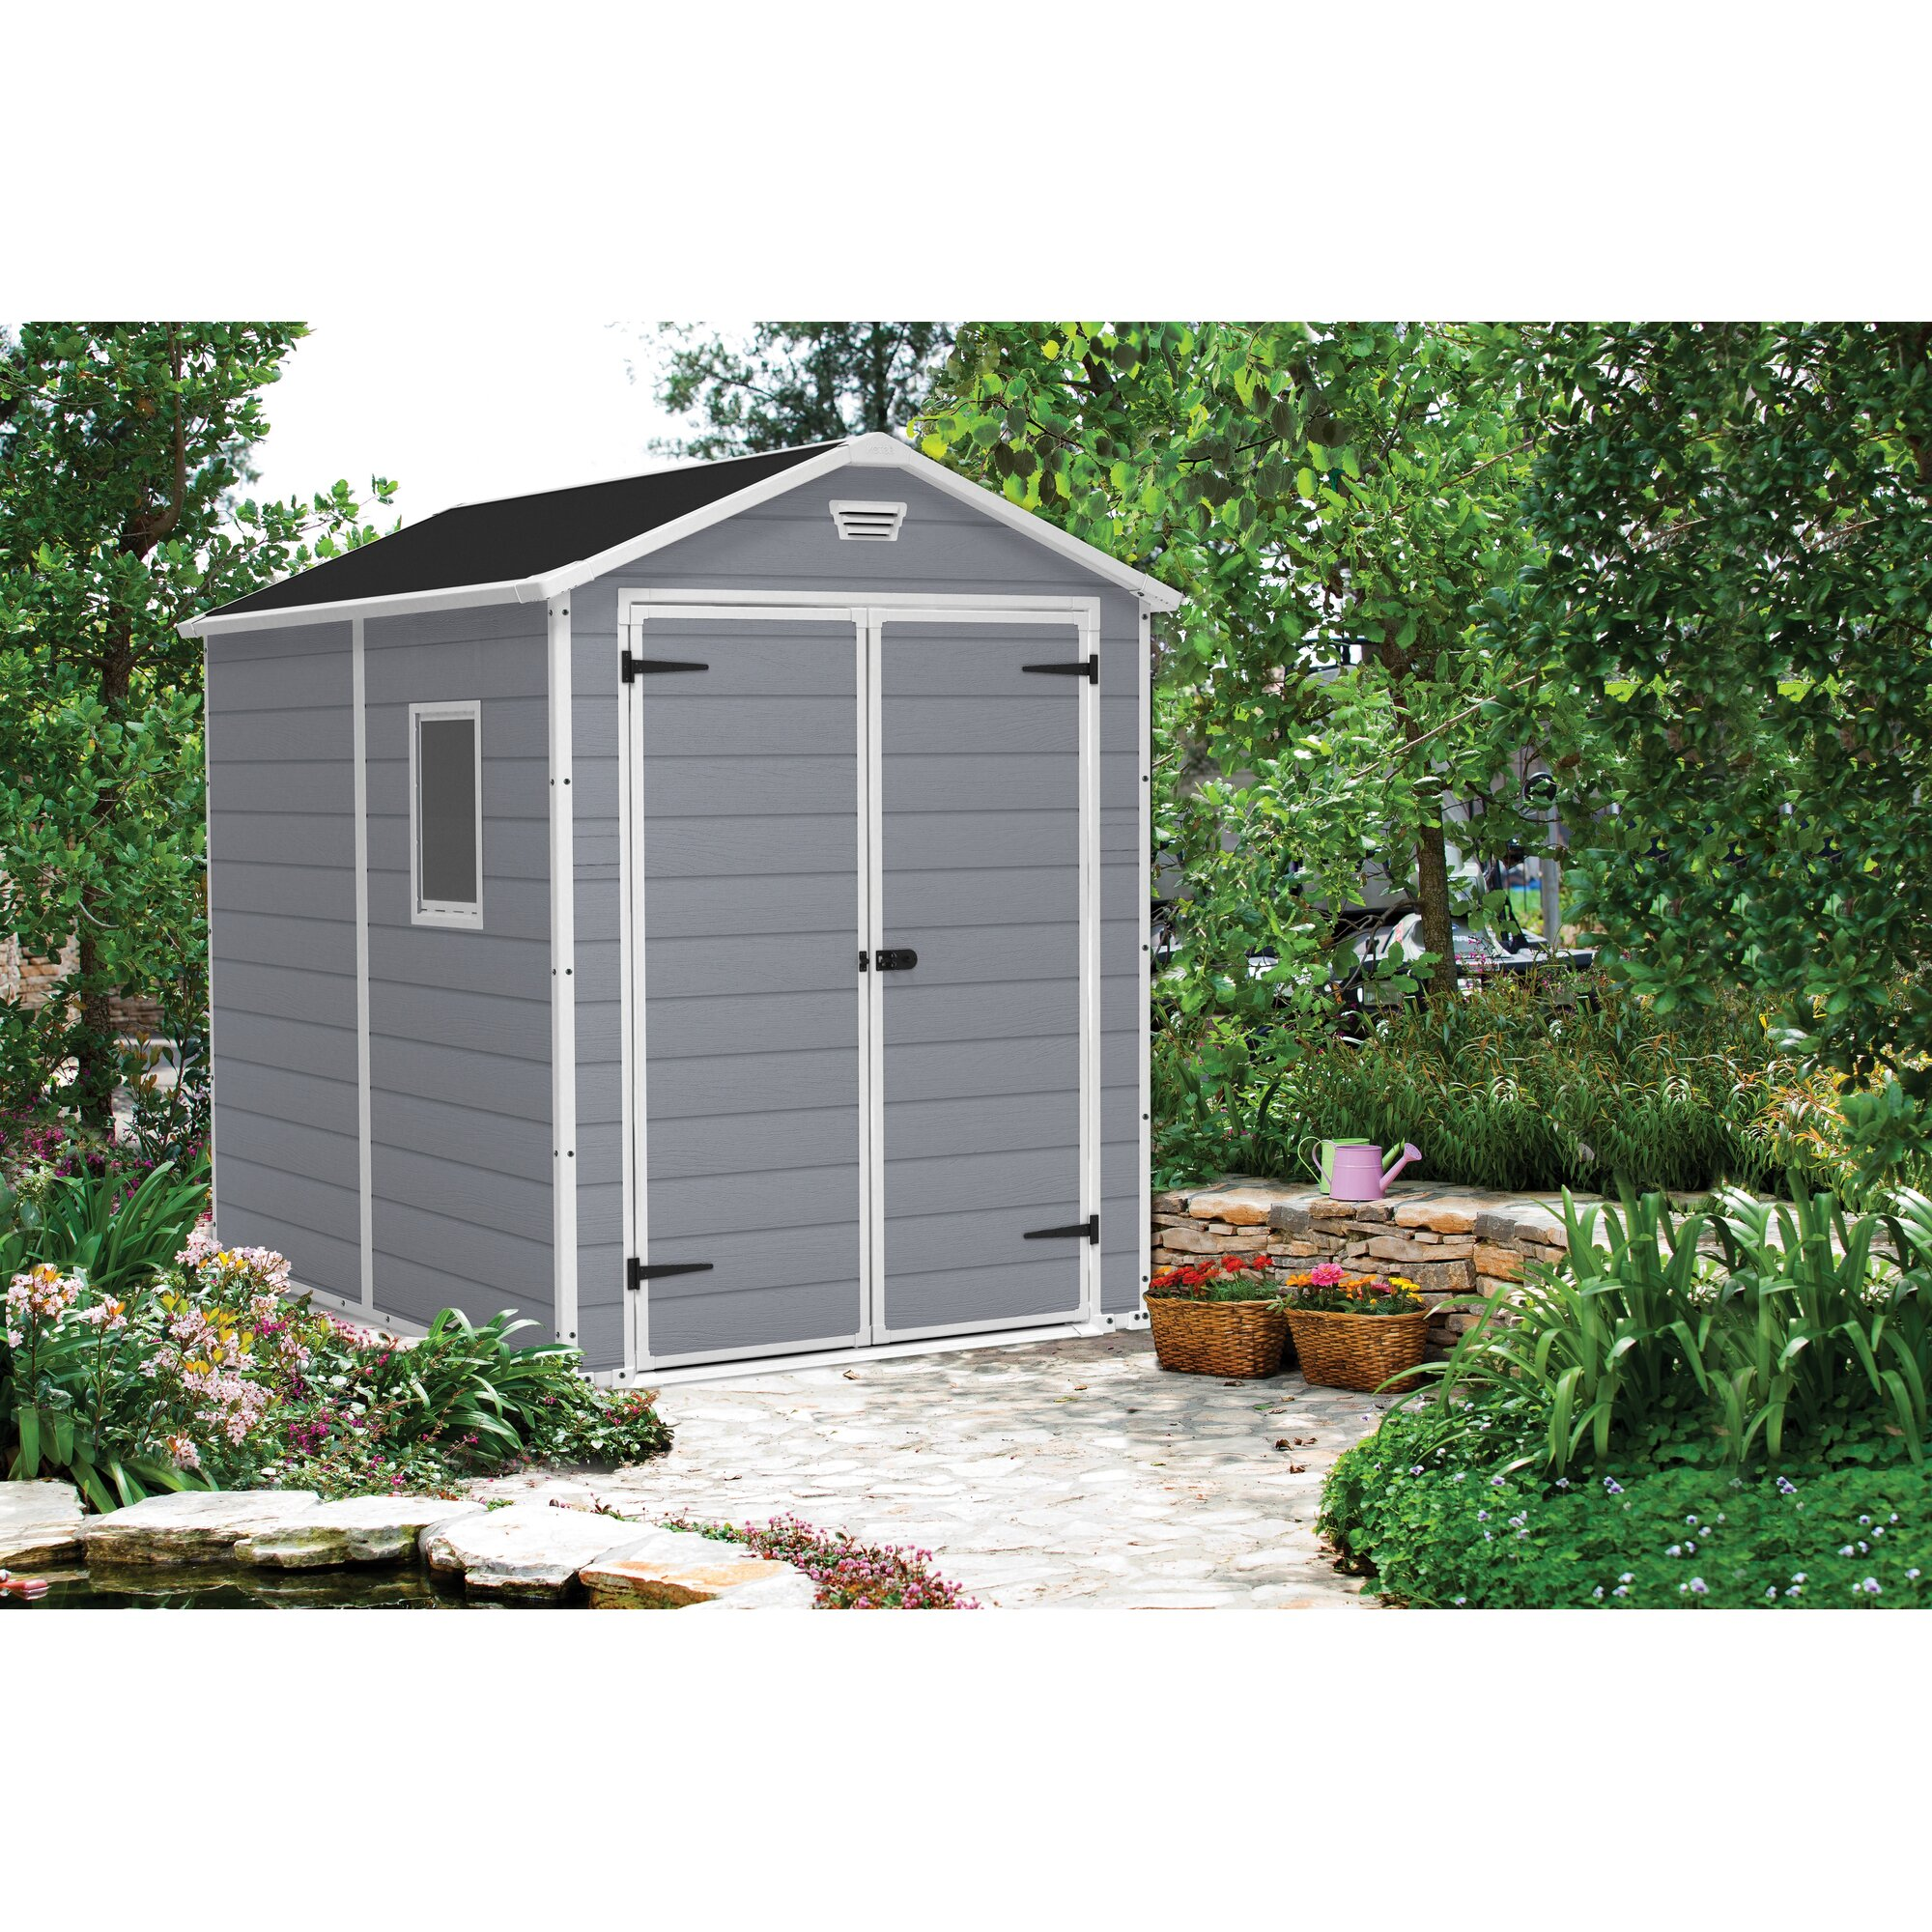 Keter manor 6 ft w x 7 4 ft d plastic storage shed for Abri de jardin pvc toit plat